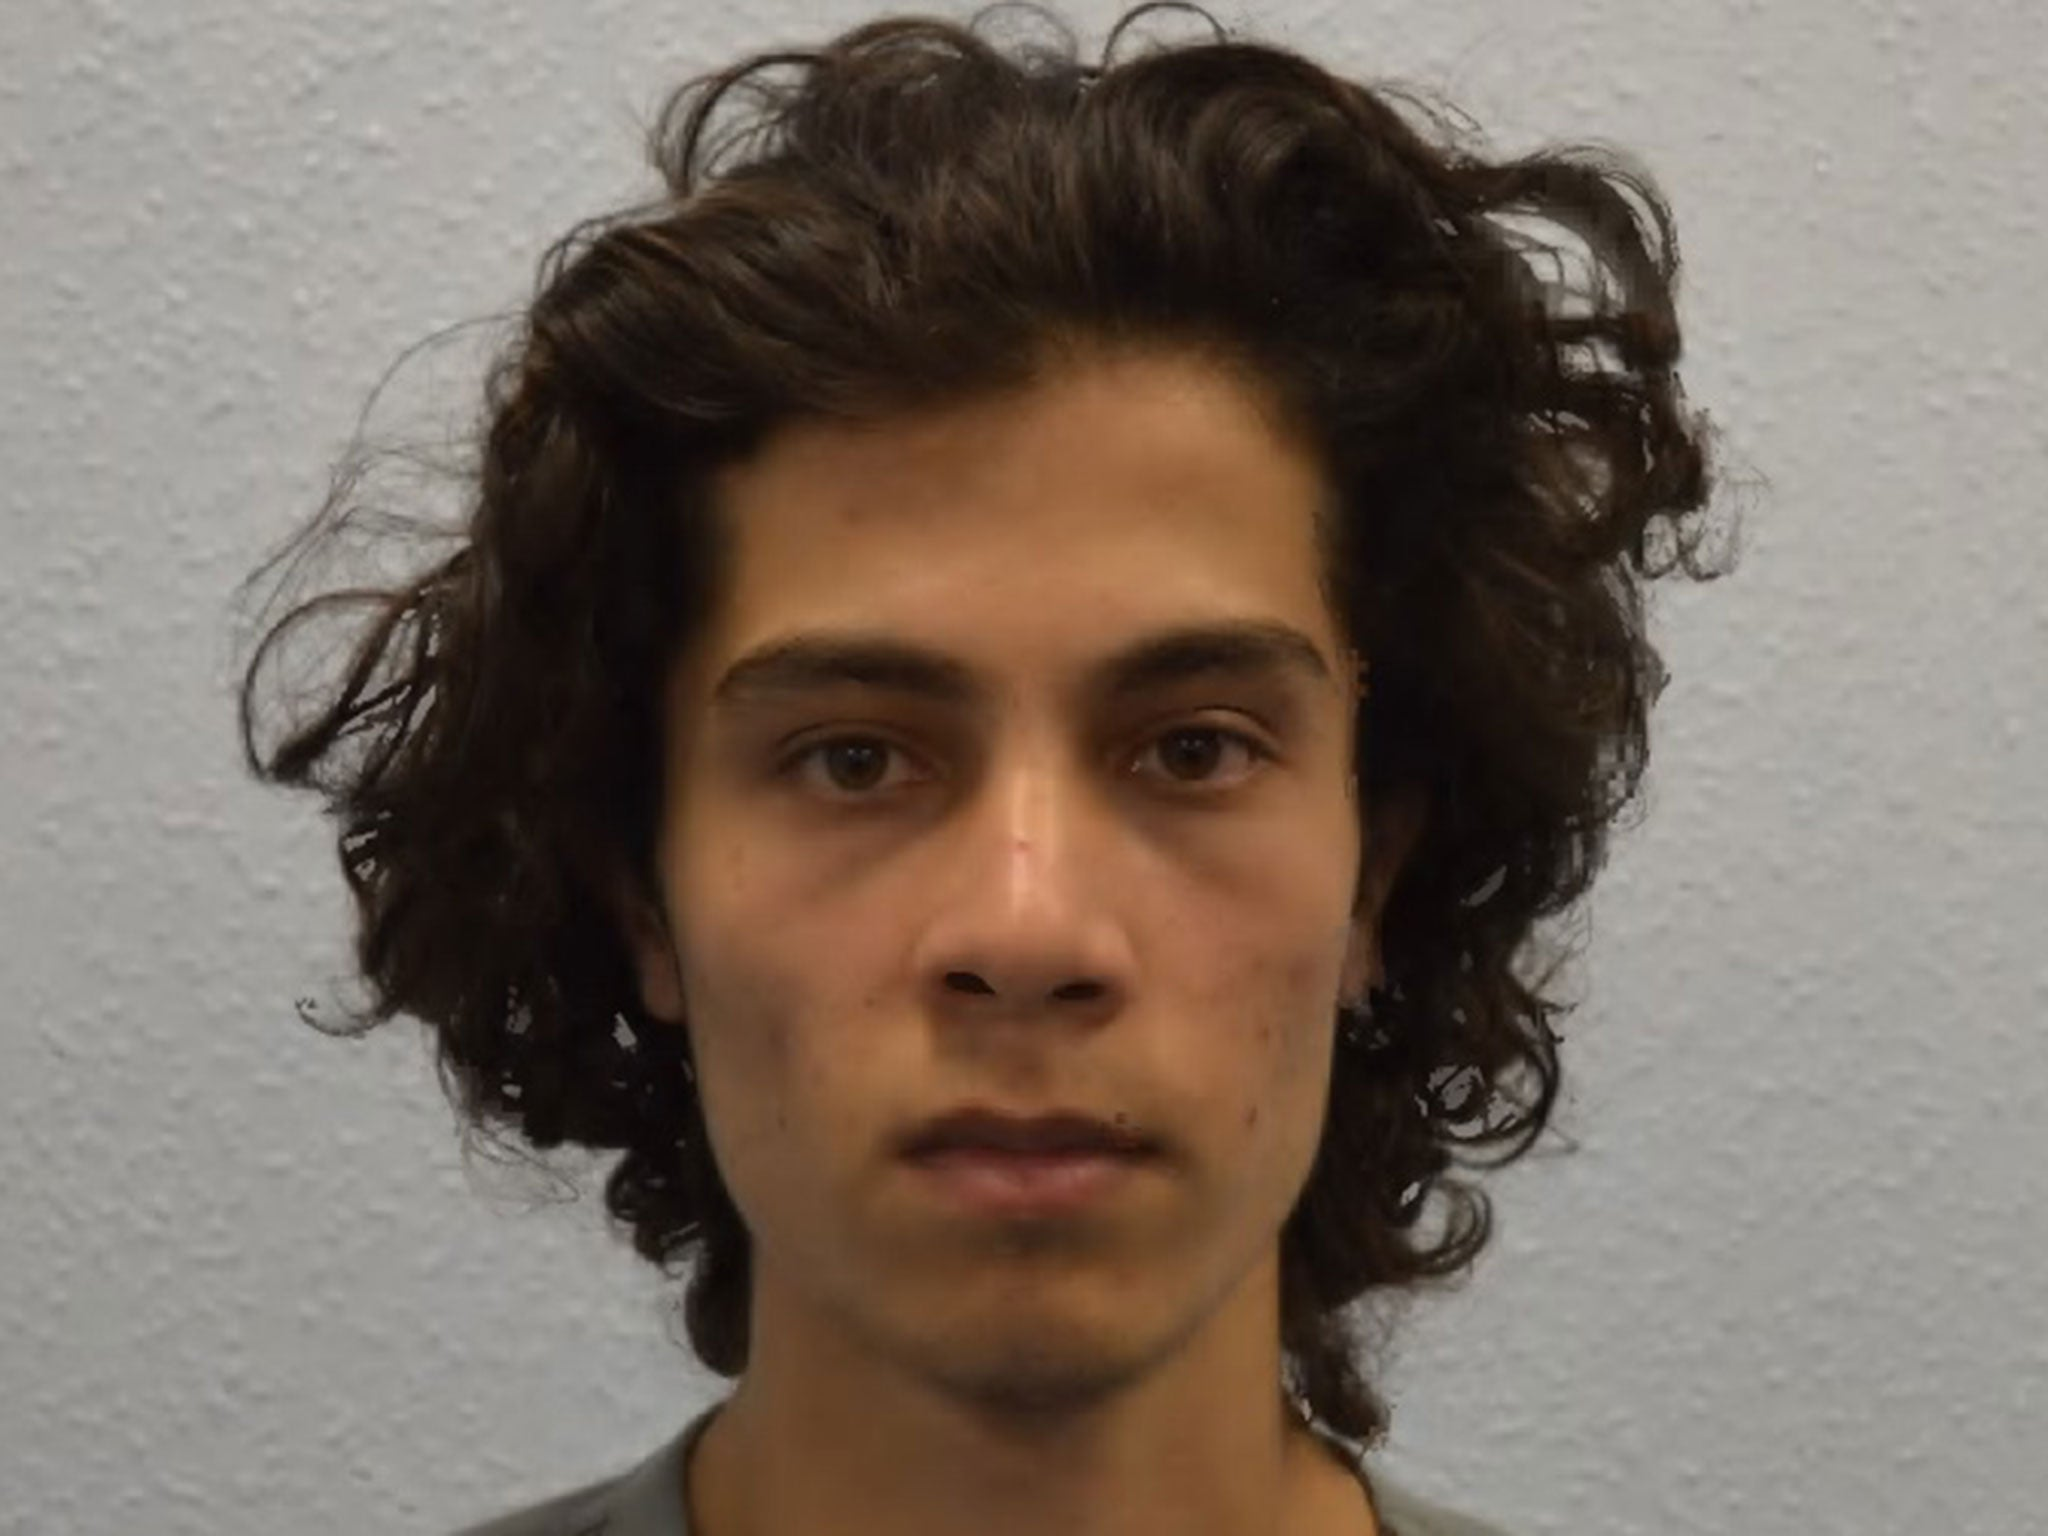 Parsons Green bomber's Isis inspiration was missed by police